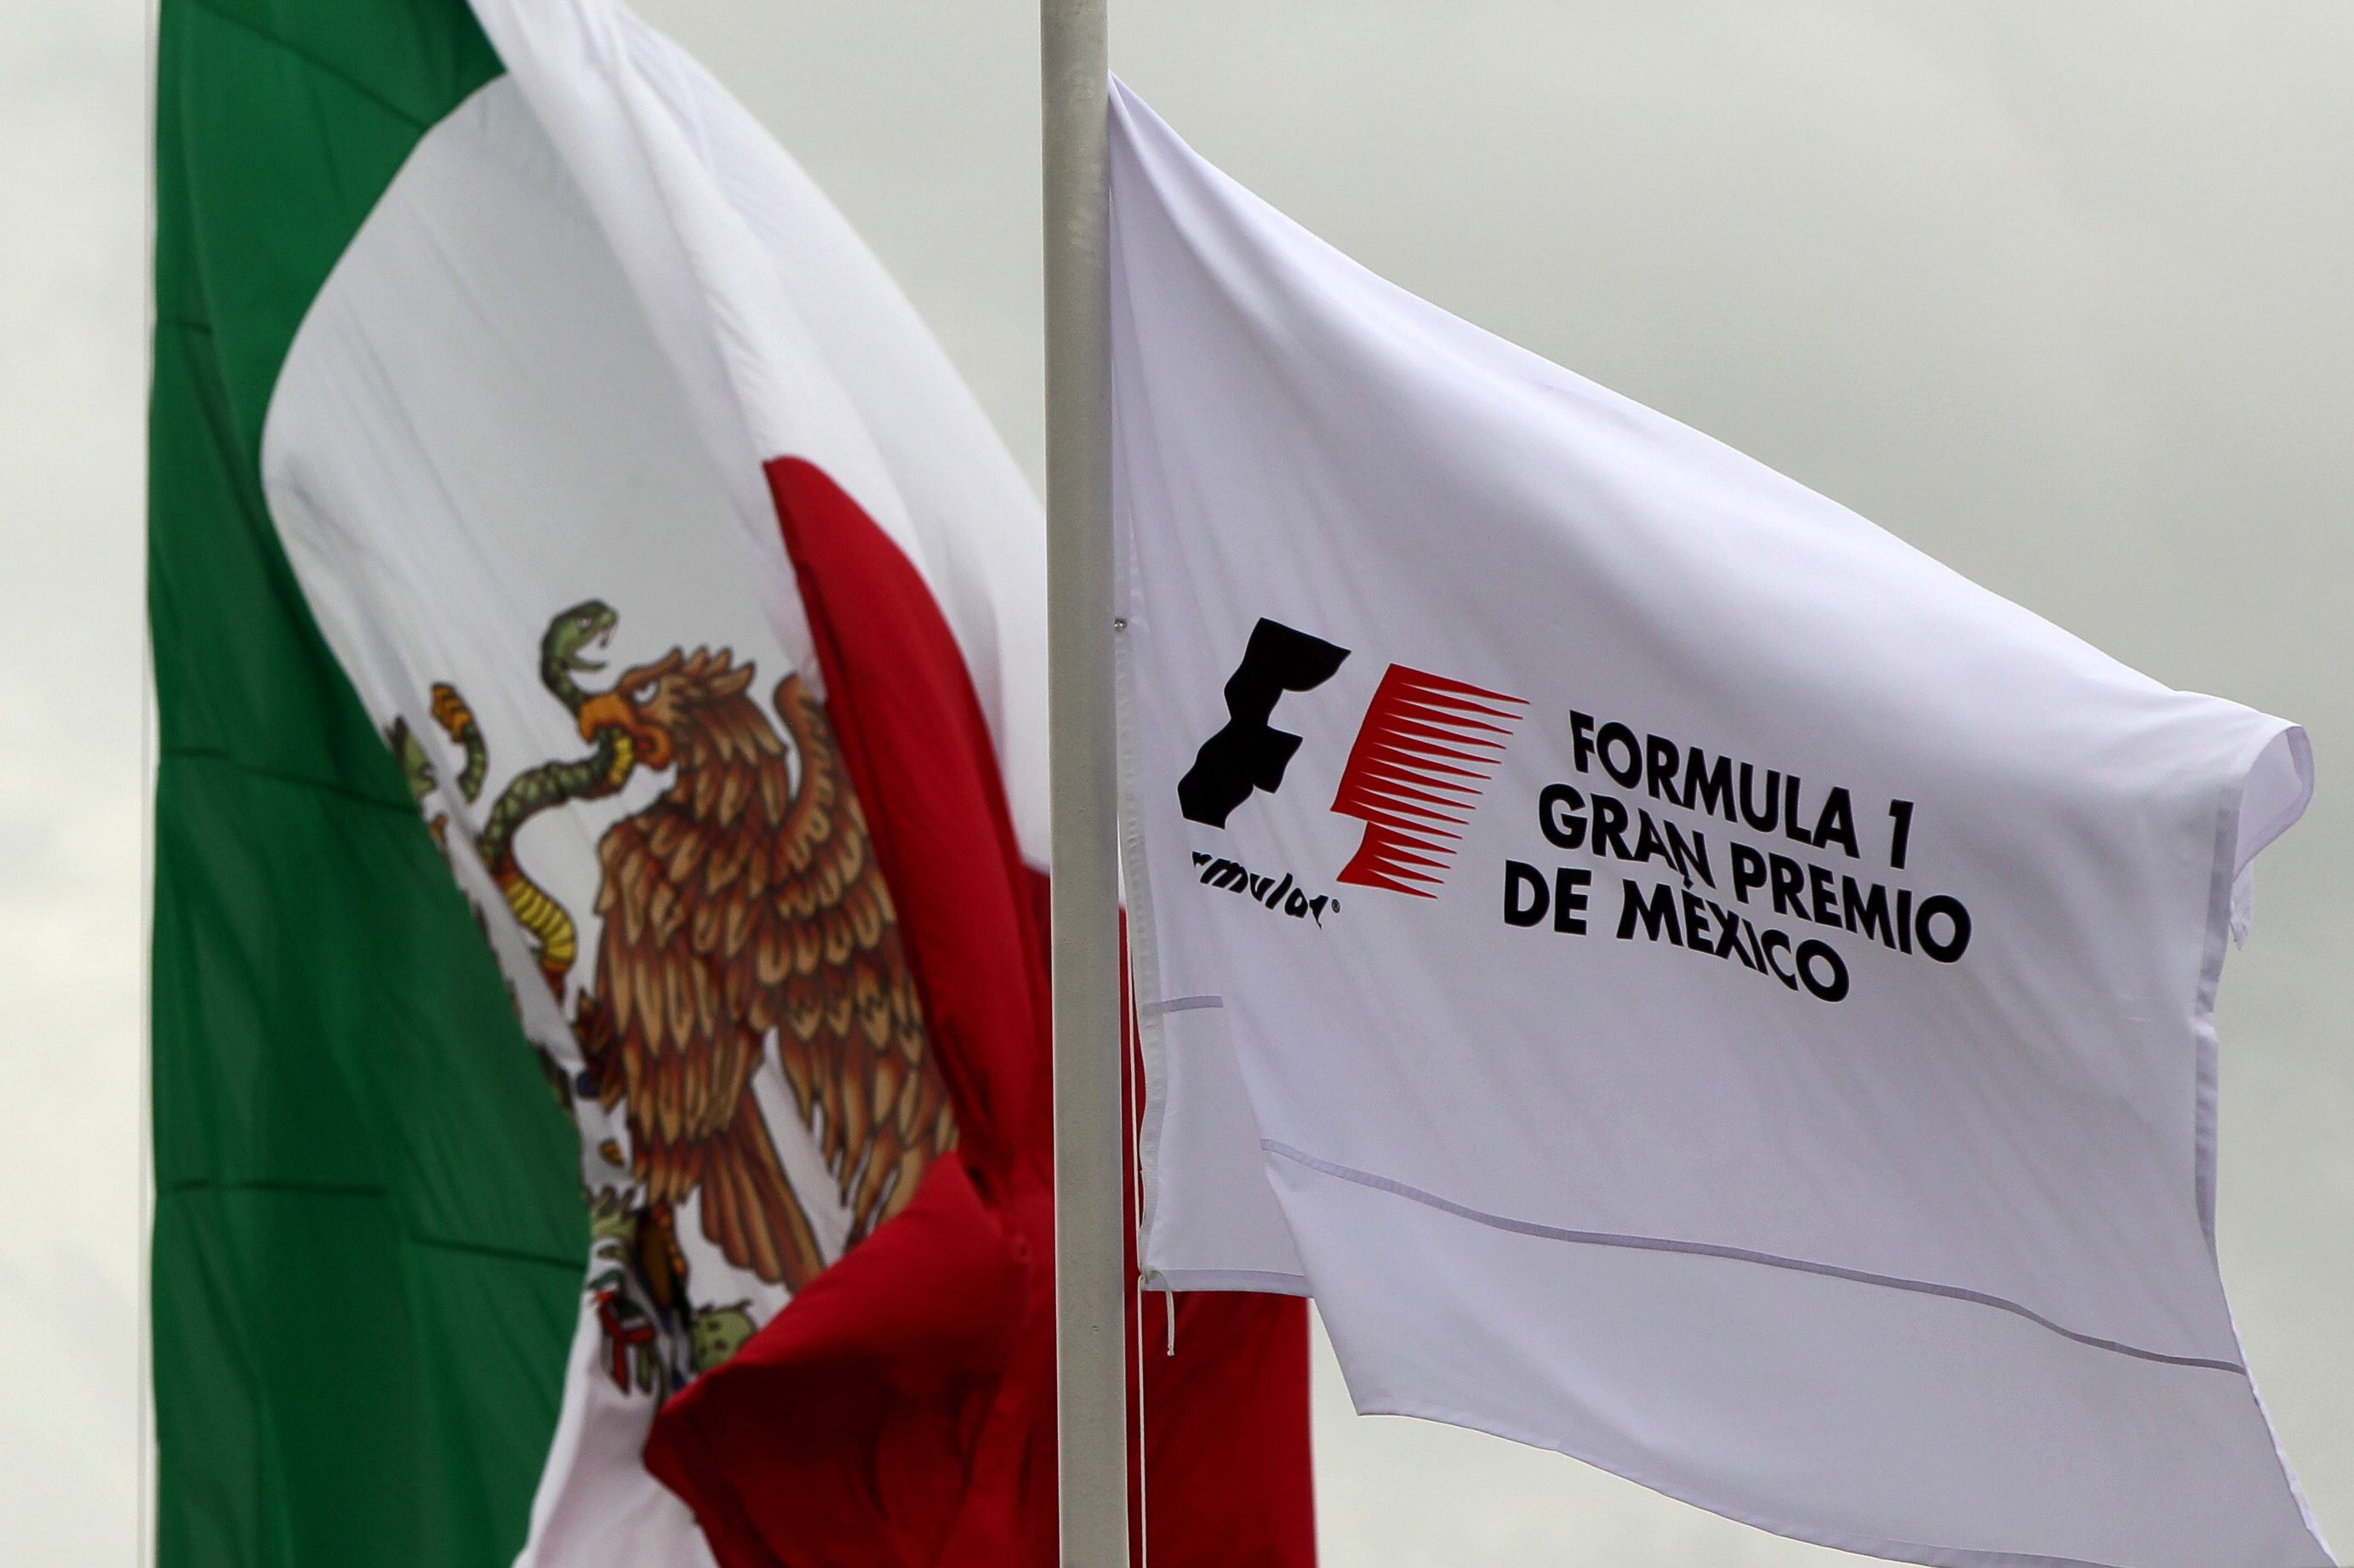 epa05606332 The flag of Mexico and Formula One are flutter in the wind at the Autodromo Hermanos Rodriguez in Mexico City, Mexico, 27 October 2016. Mexico's Formula One Grand Prix, is due to start on 30 October at Hermanos Rodriguez racetrack, in Mexico City.  EPA/JOSE MENDEZ